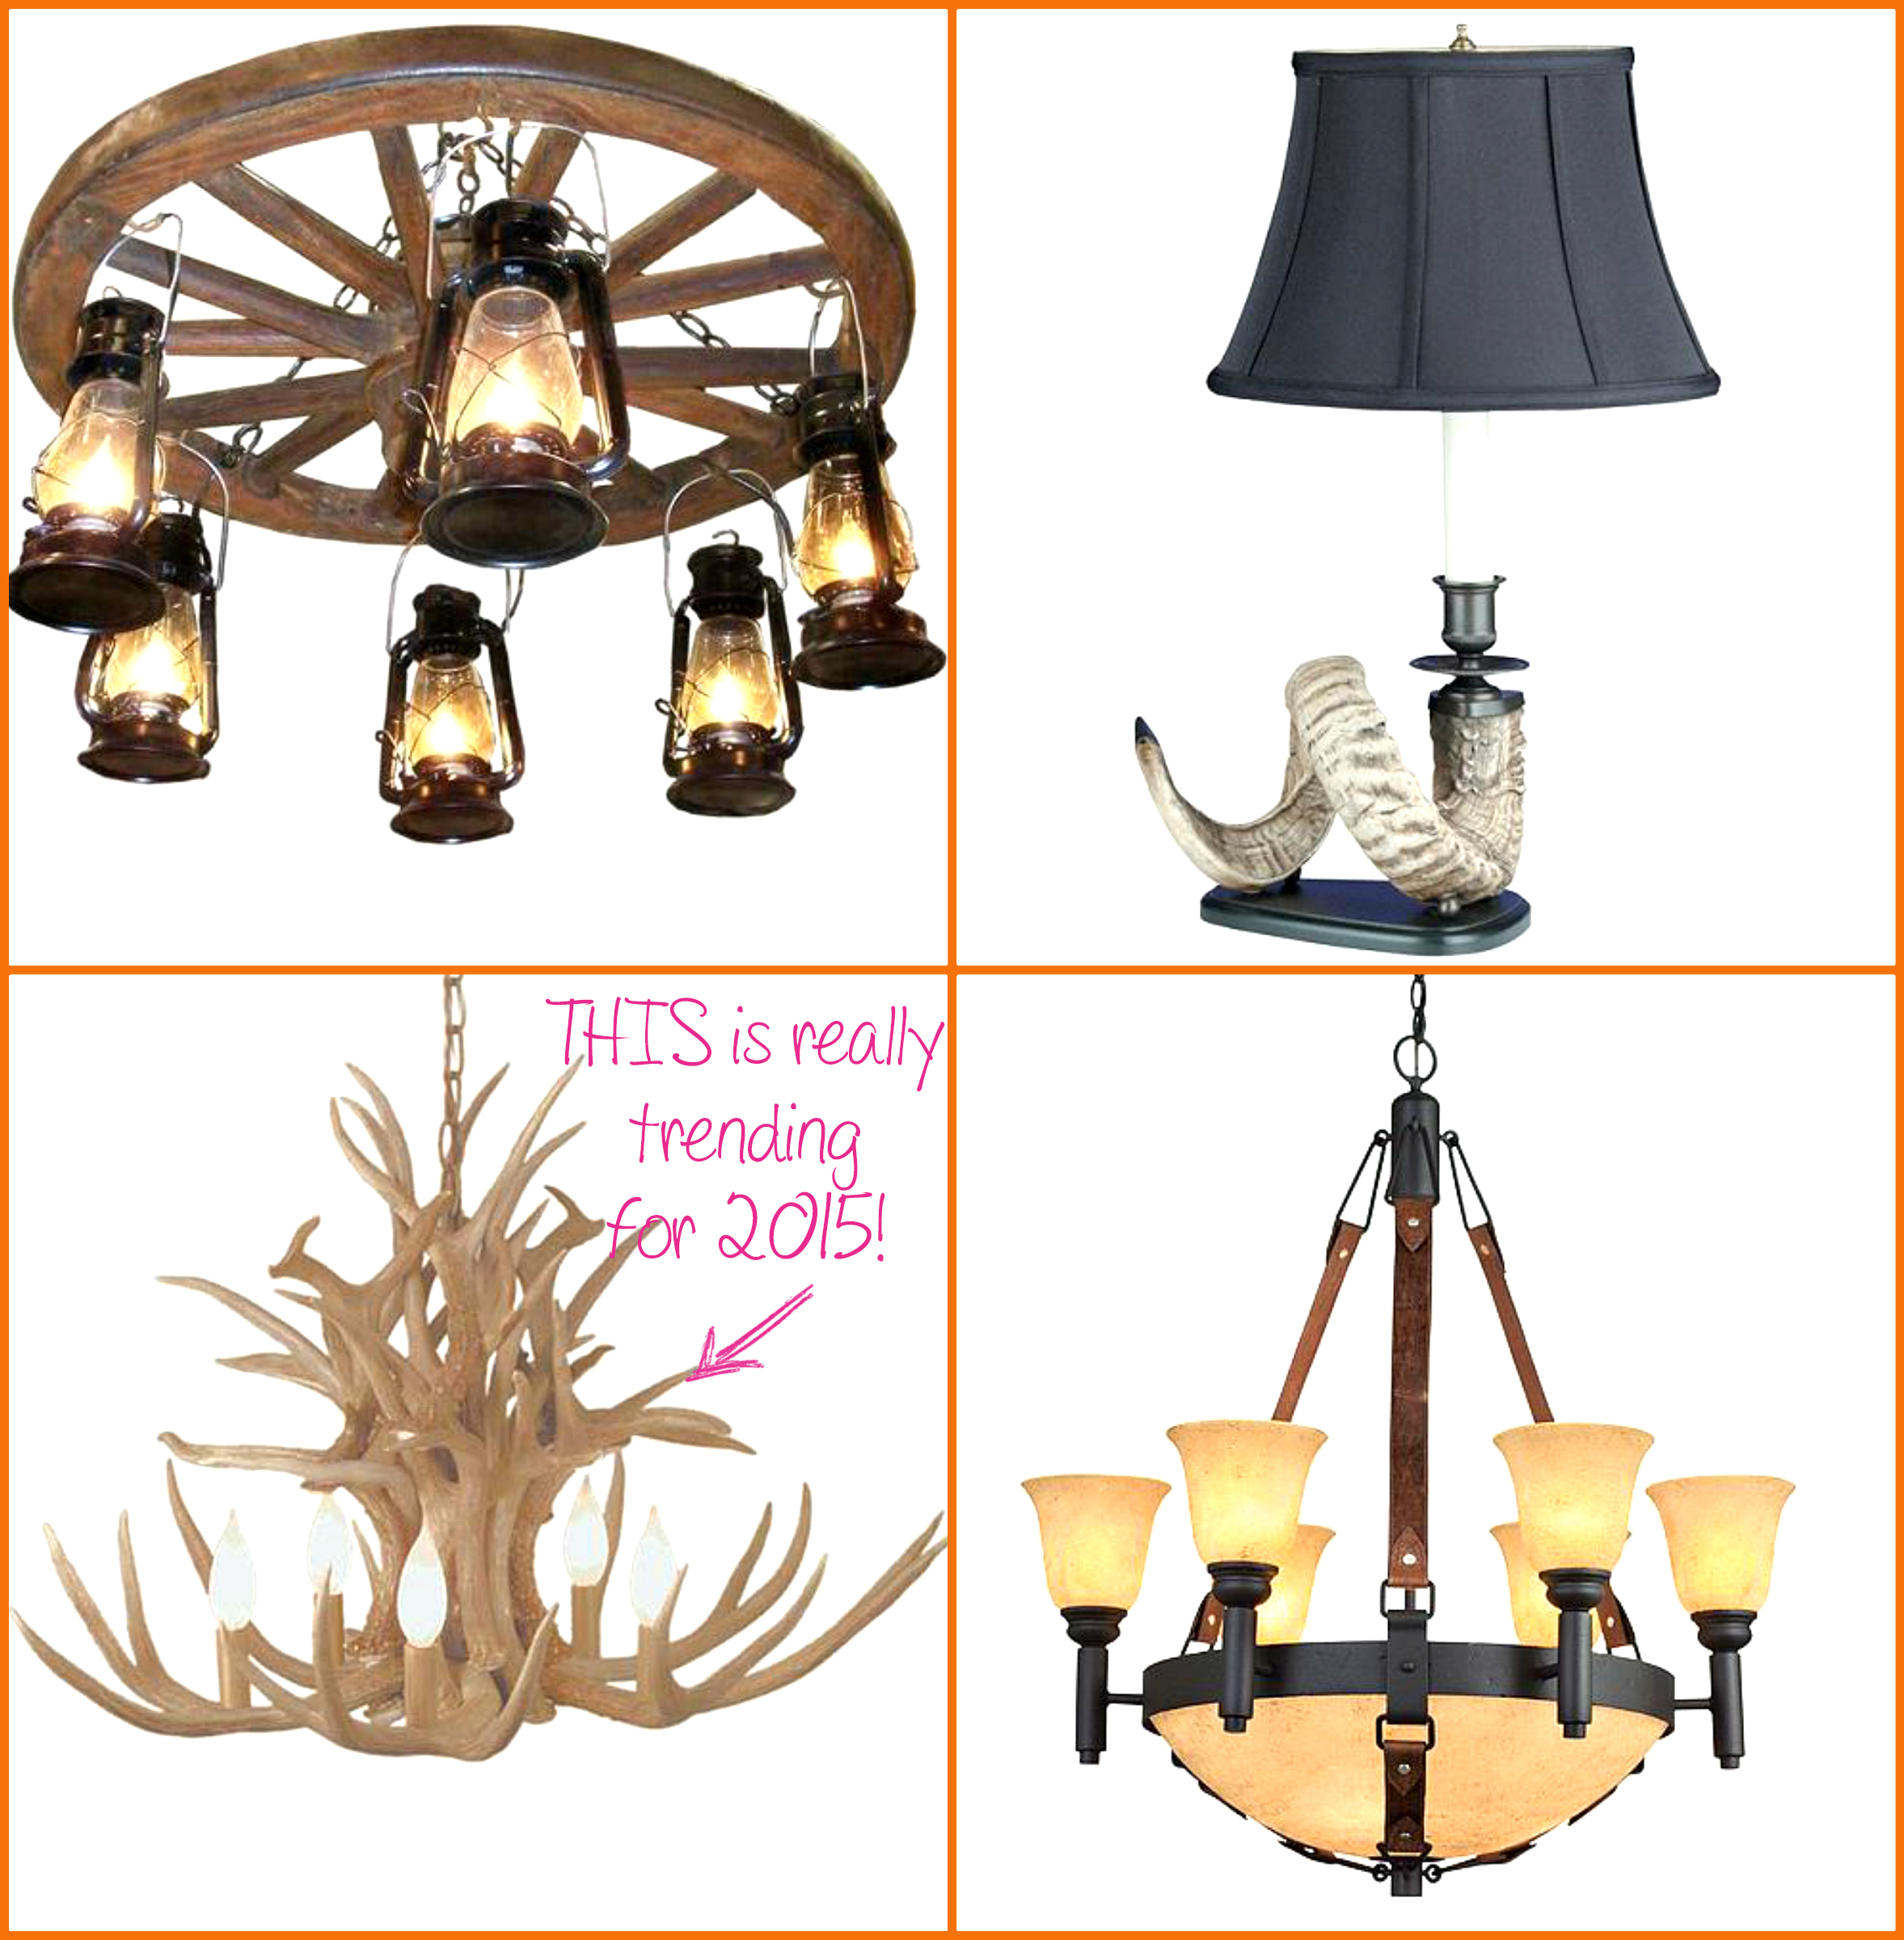 1 rocky-mountain-cabin-decor-lamps-better-decorating-bible-blog-rustic-cottage-country-style-cowboy-western-decor-antler-lamp-horse-bridle-chnadelier-hanging-lantern-wagon-wheel-light